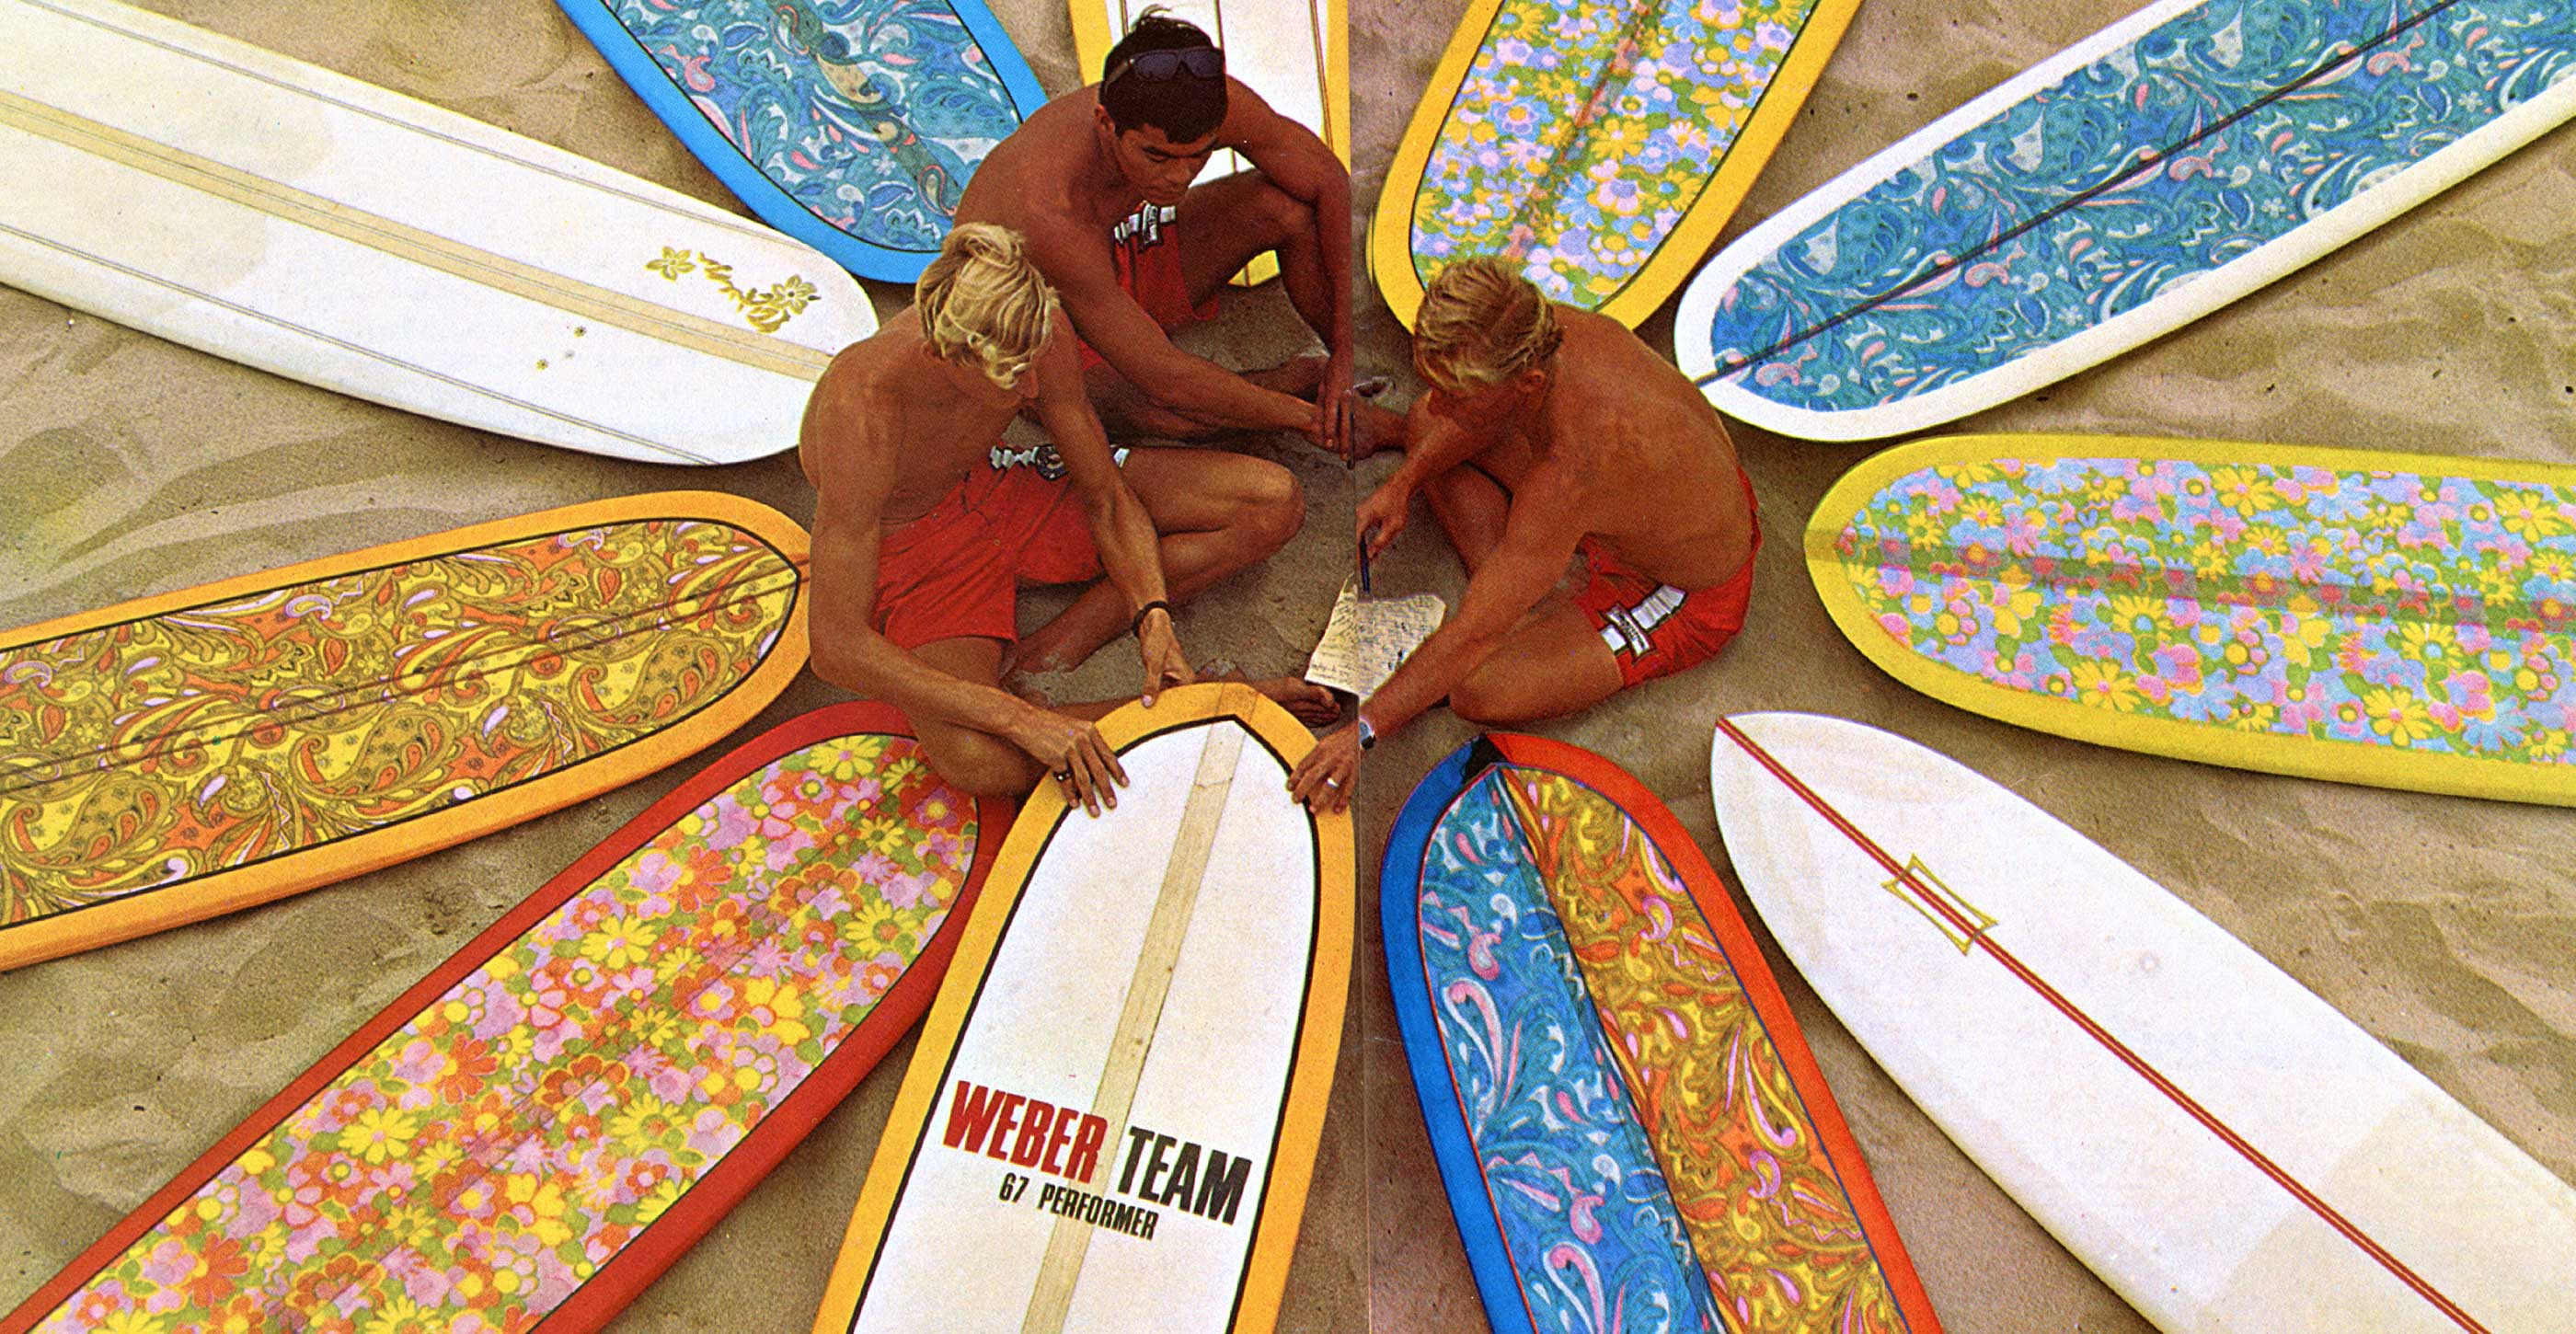 HAND-SHAPED SURFBOARDS